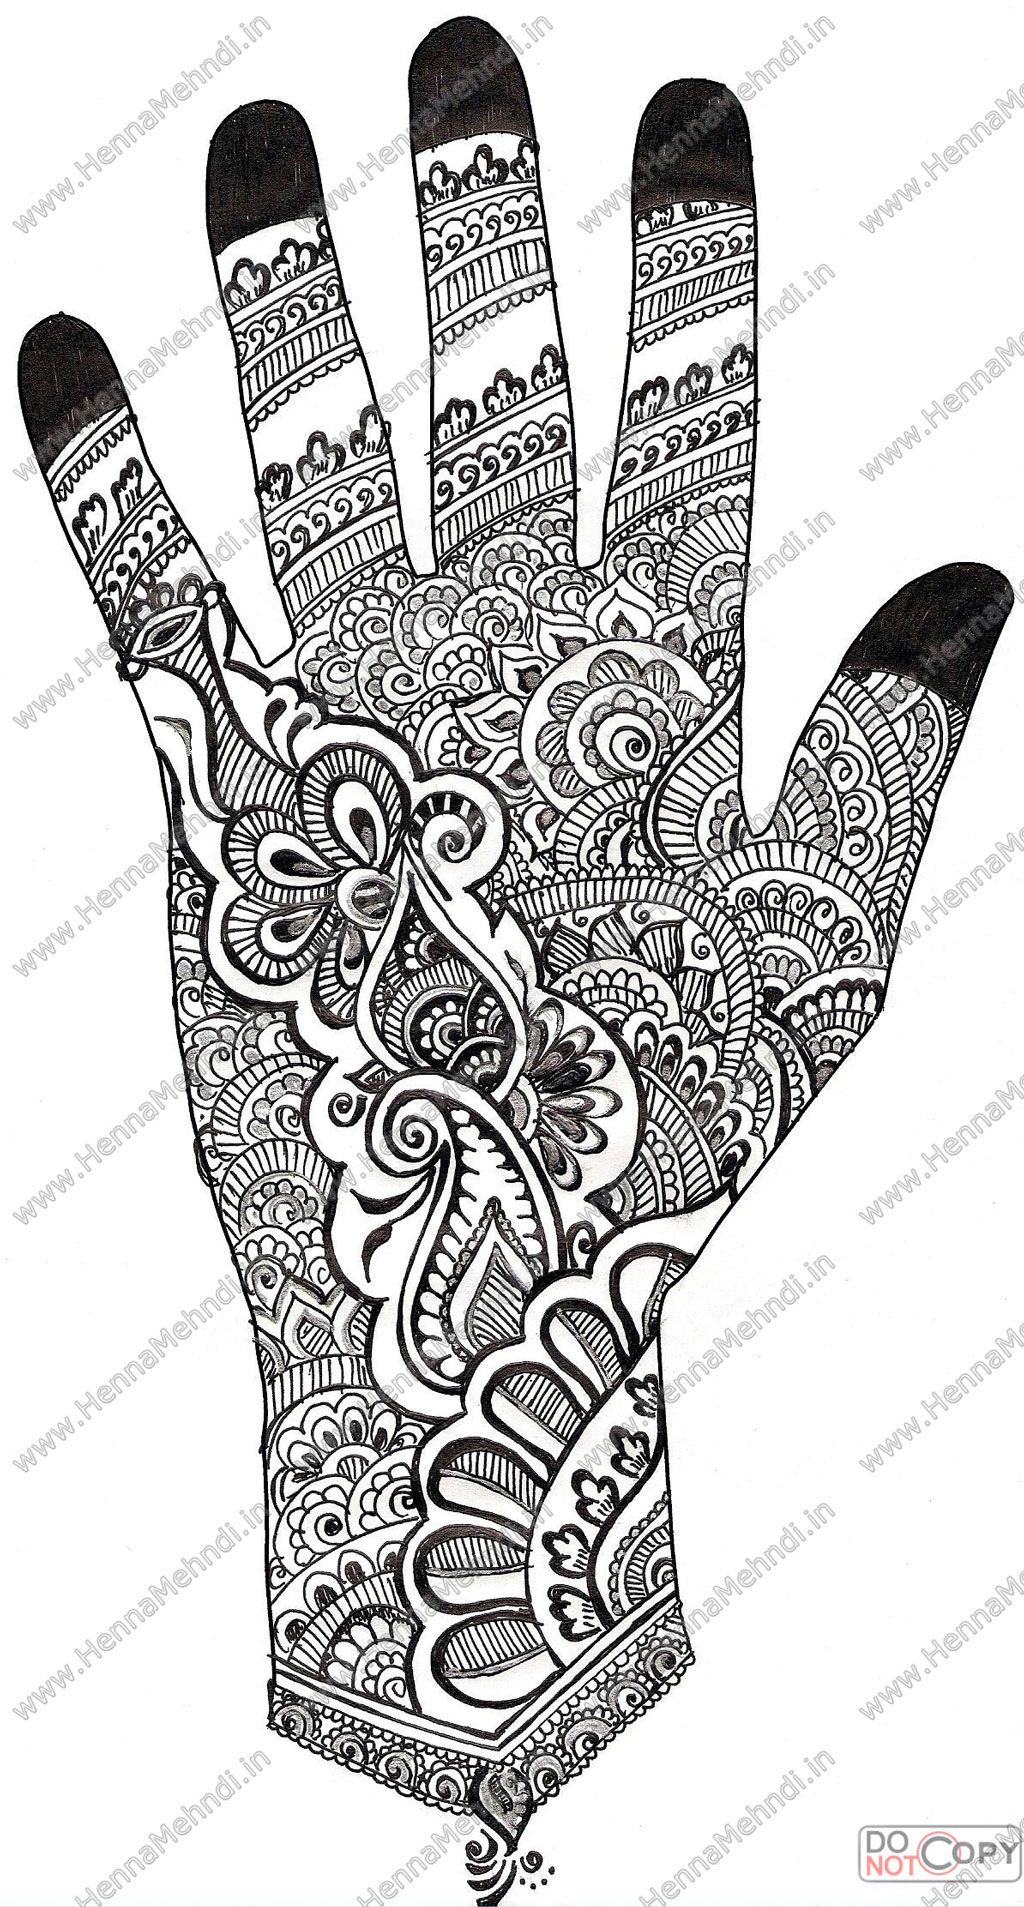 Coloring pages of mehndi hand pattern - Henna Mehndi Designs 4 By Hinasabreen On Deviantart